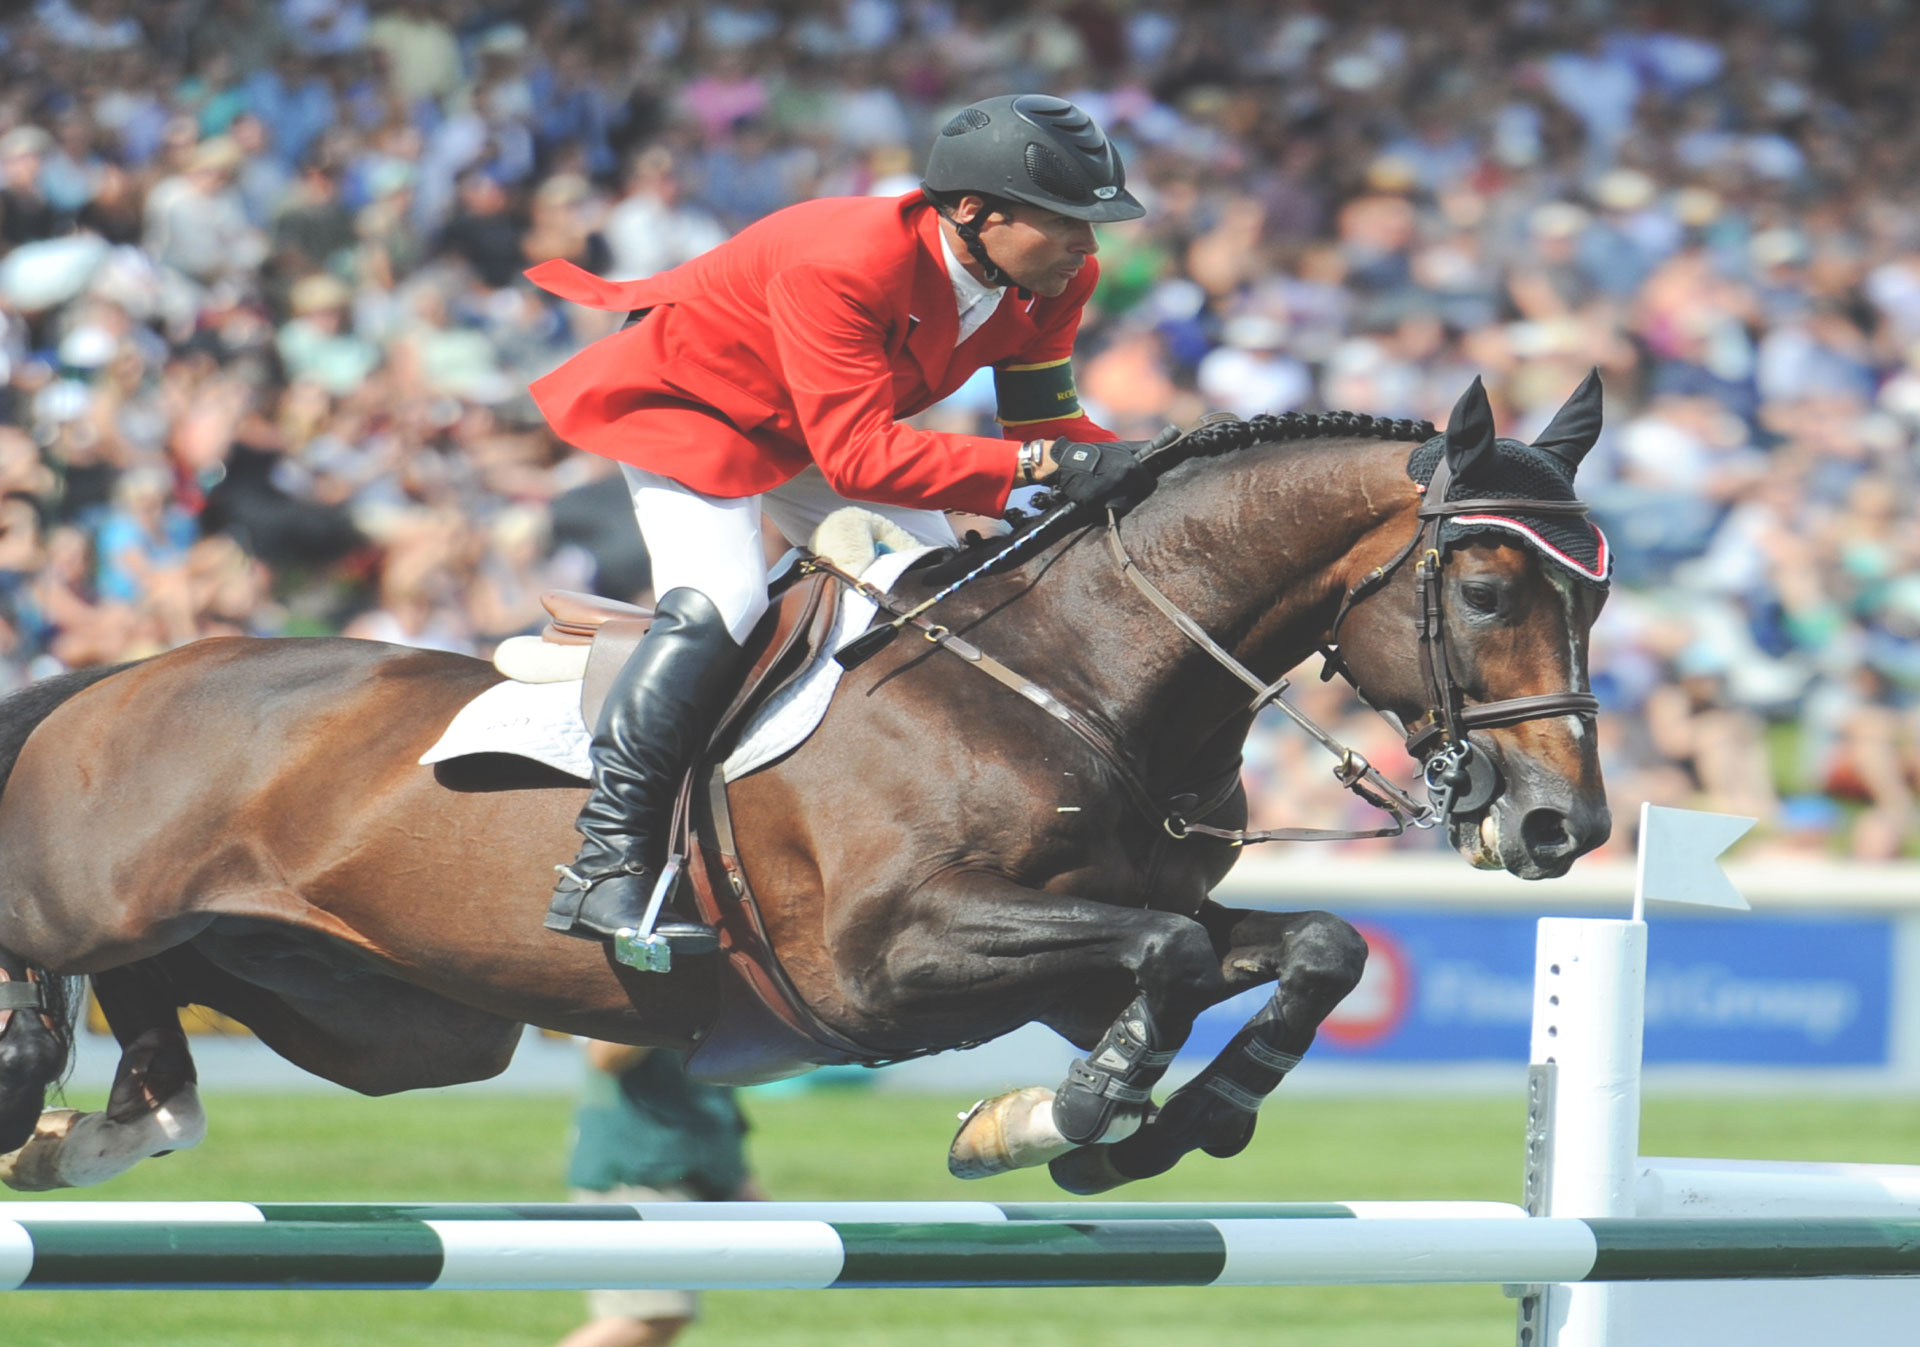 Watch incredible show jumpers from around the world compete at the Spruce Meadows 'Masters' tournament.